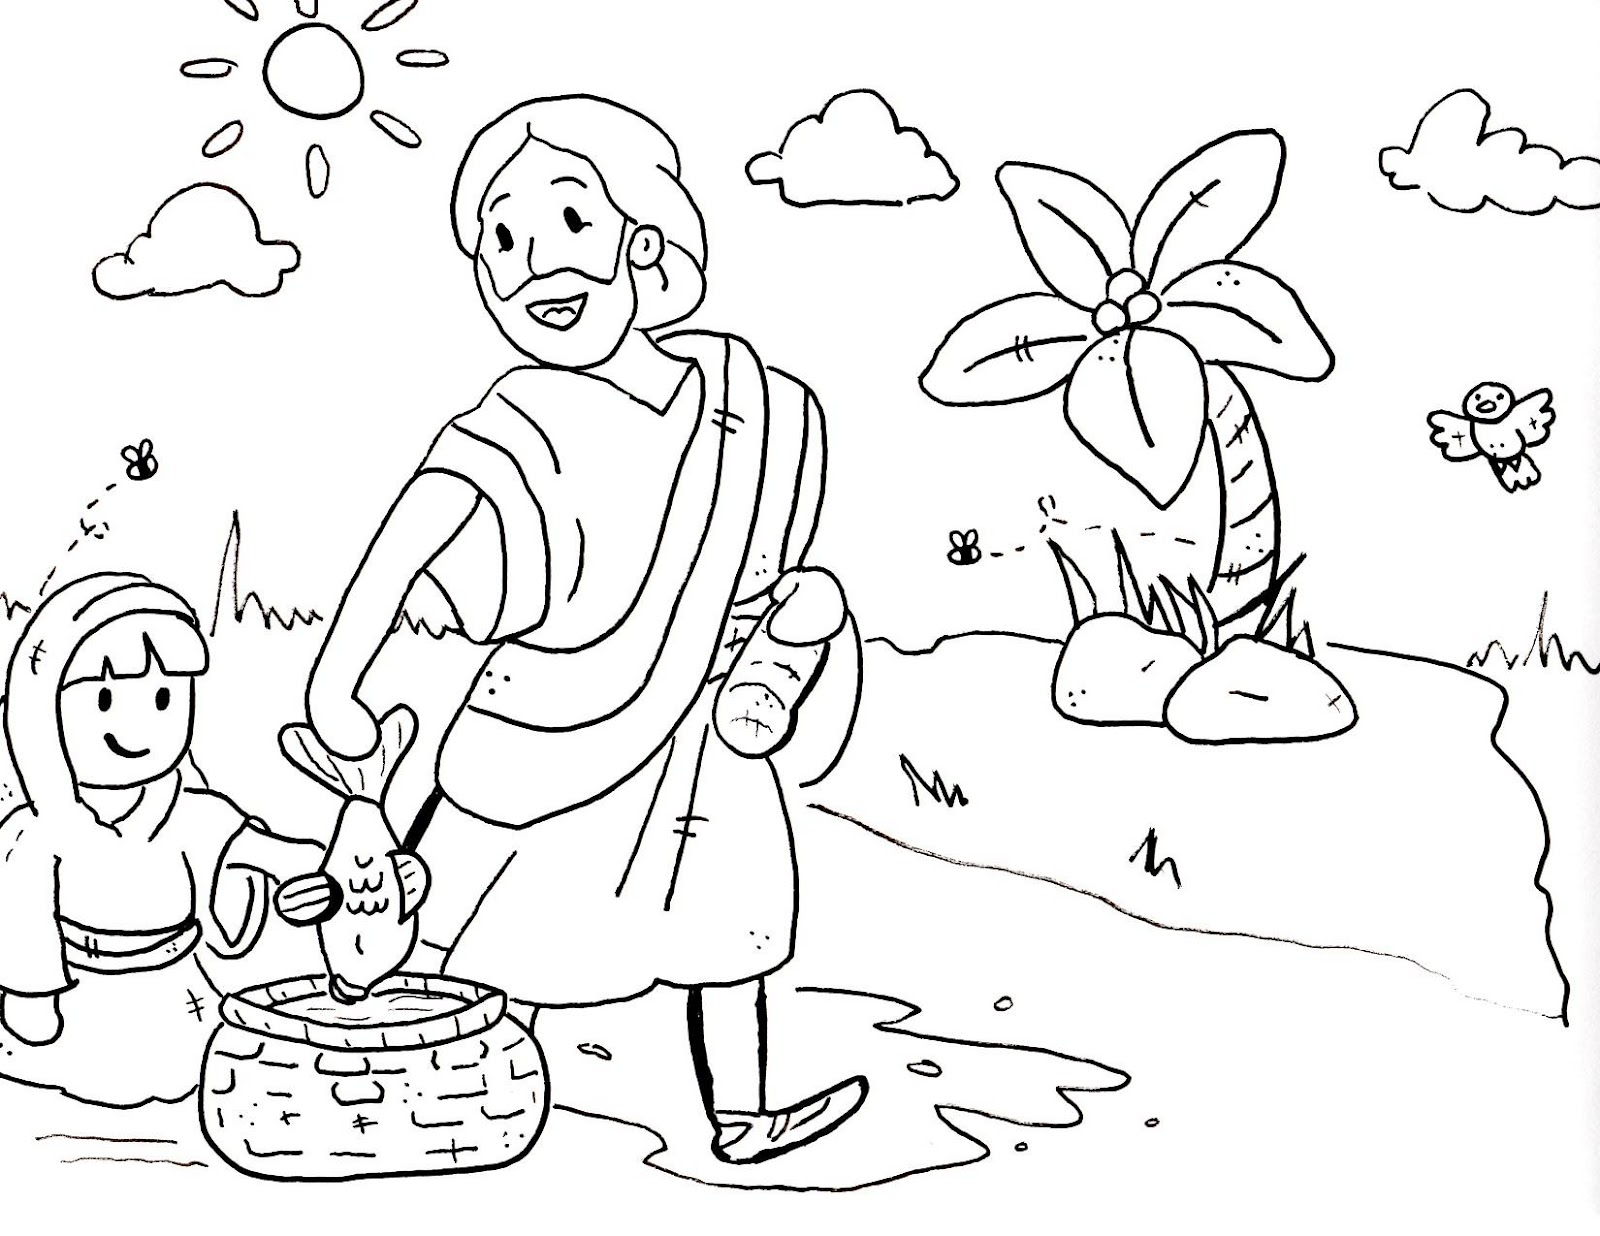 Sermons for kids coloring pages for Free religious coloring pages